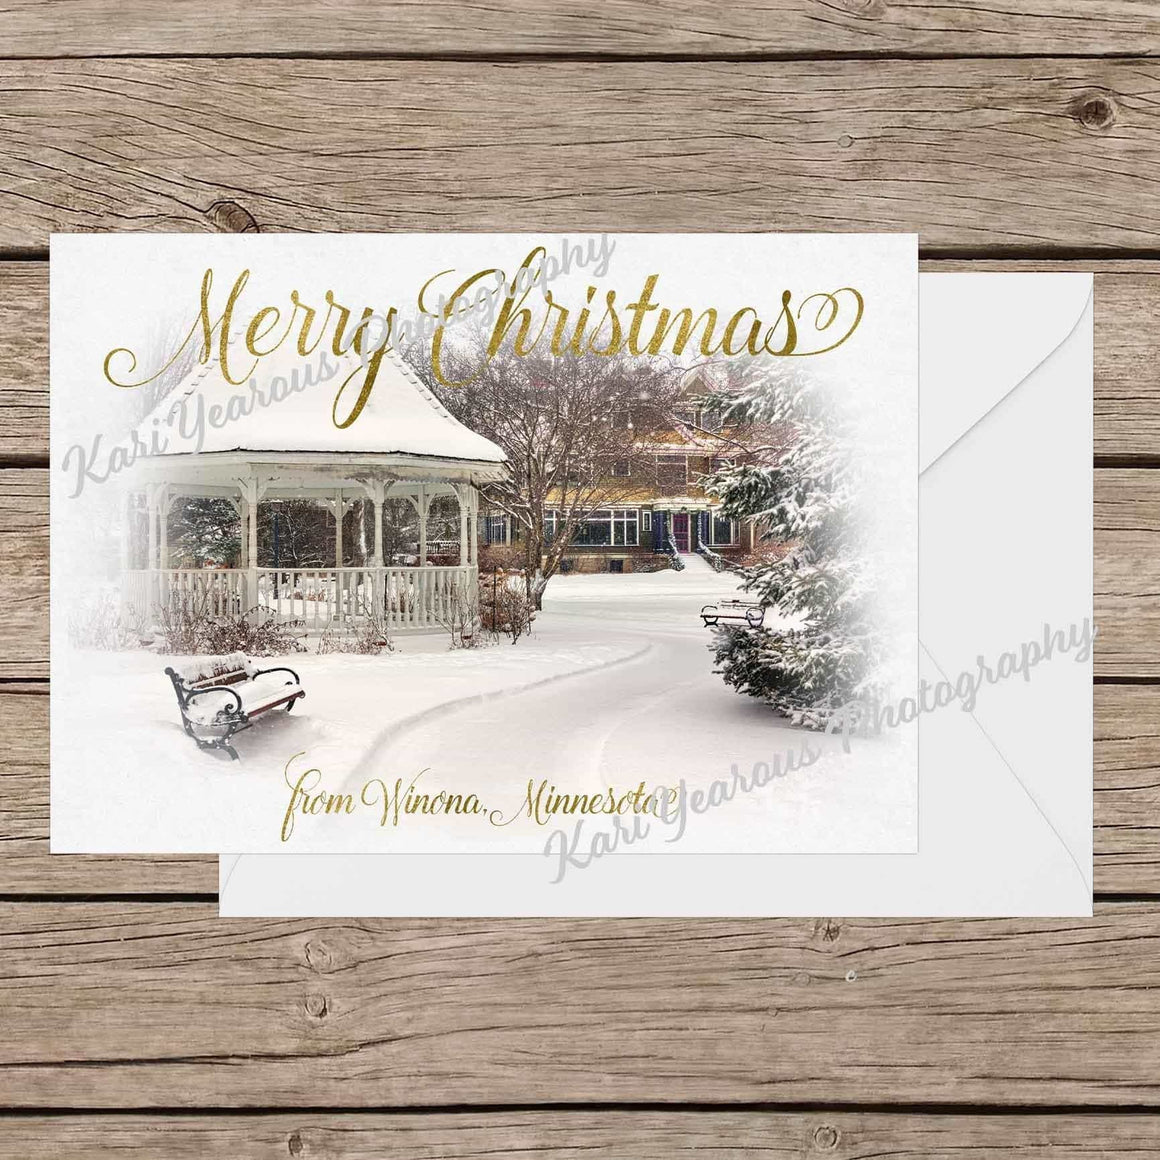 Card Merry Christmas From Winona Minnesota, 5 pk - Kari Yearous Photography KetoLaughs